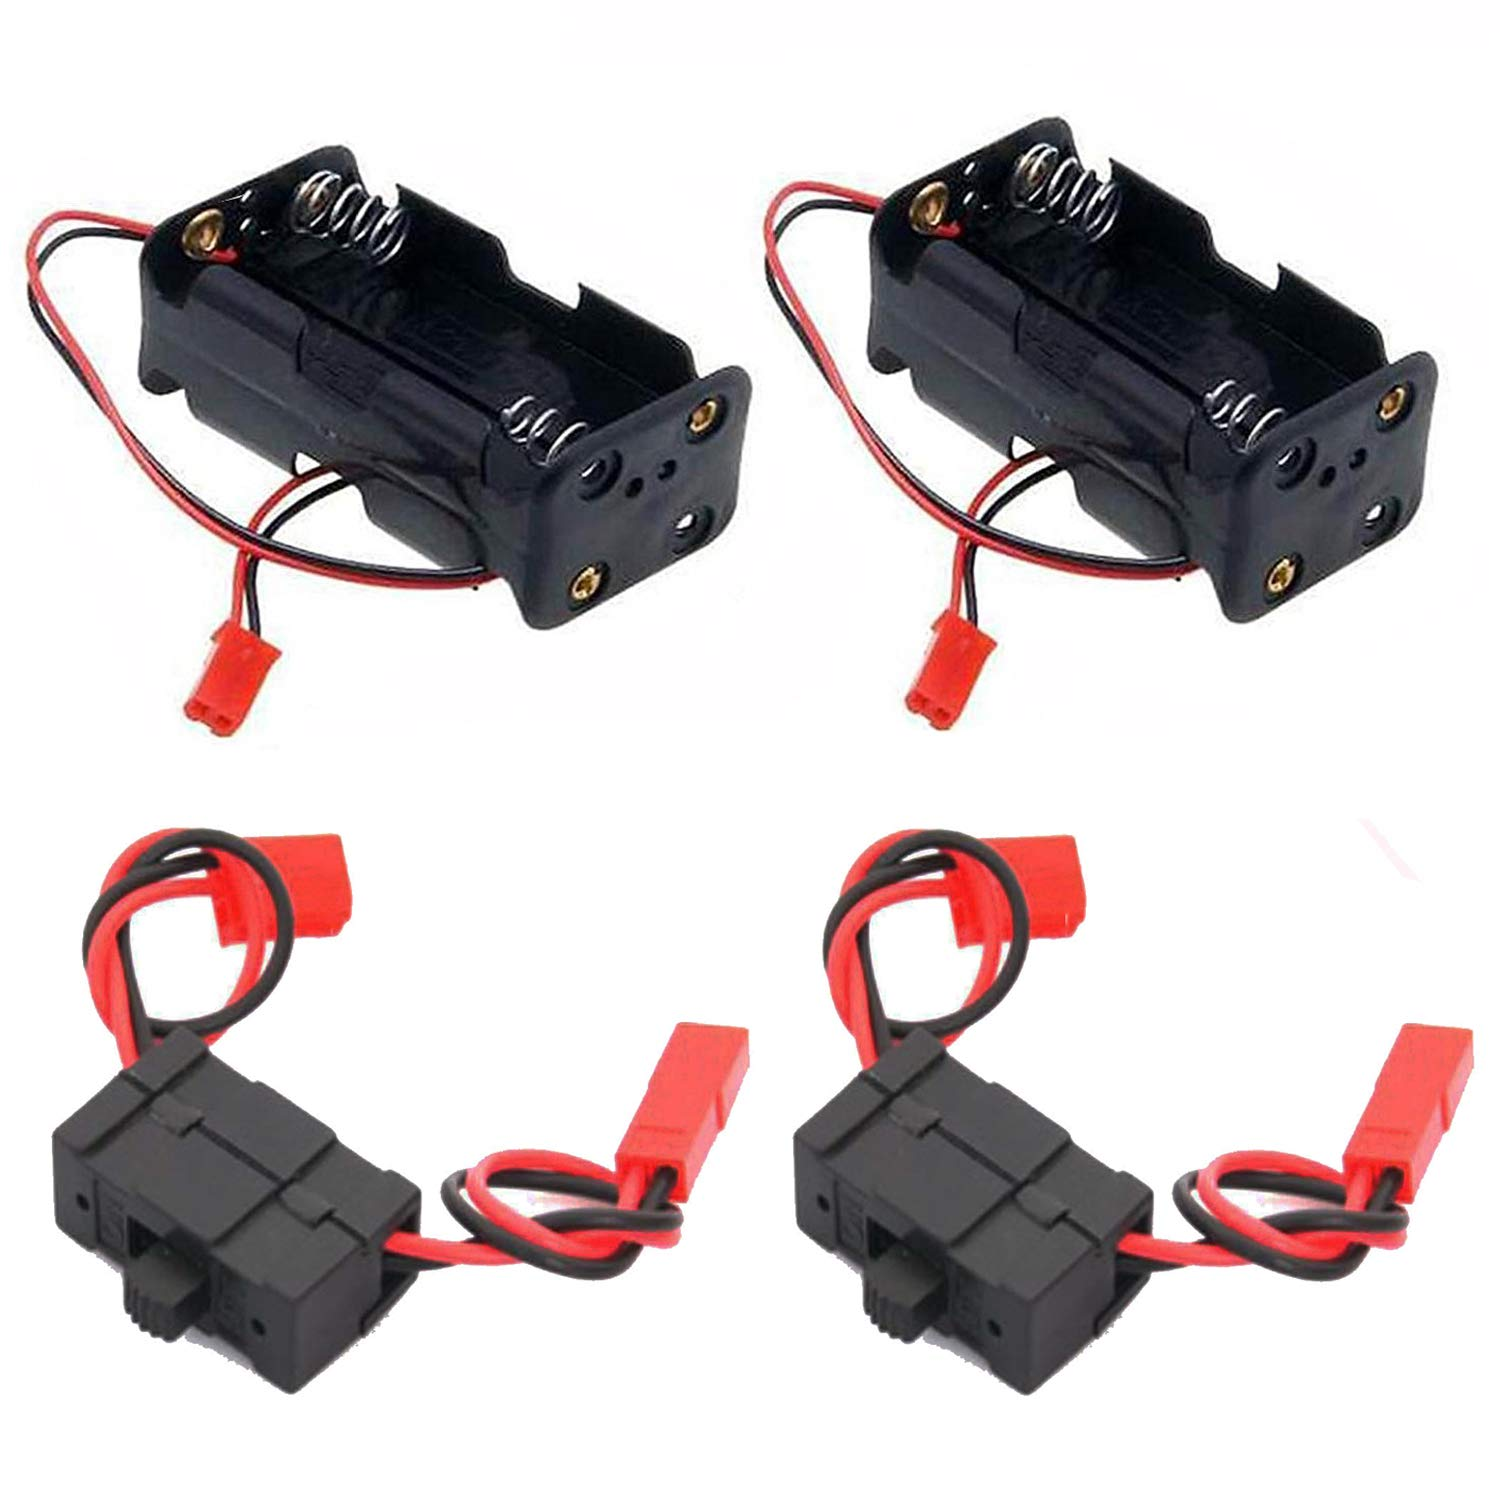 2 Set ShareGoo On/Off Power Switch Battery Receiver & 4 Cell AA Battery Container Case Holder Pack Box with JST Plug for HSP Redcat 1/8 1/10 RC Nitro Power Car Crawler Truck